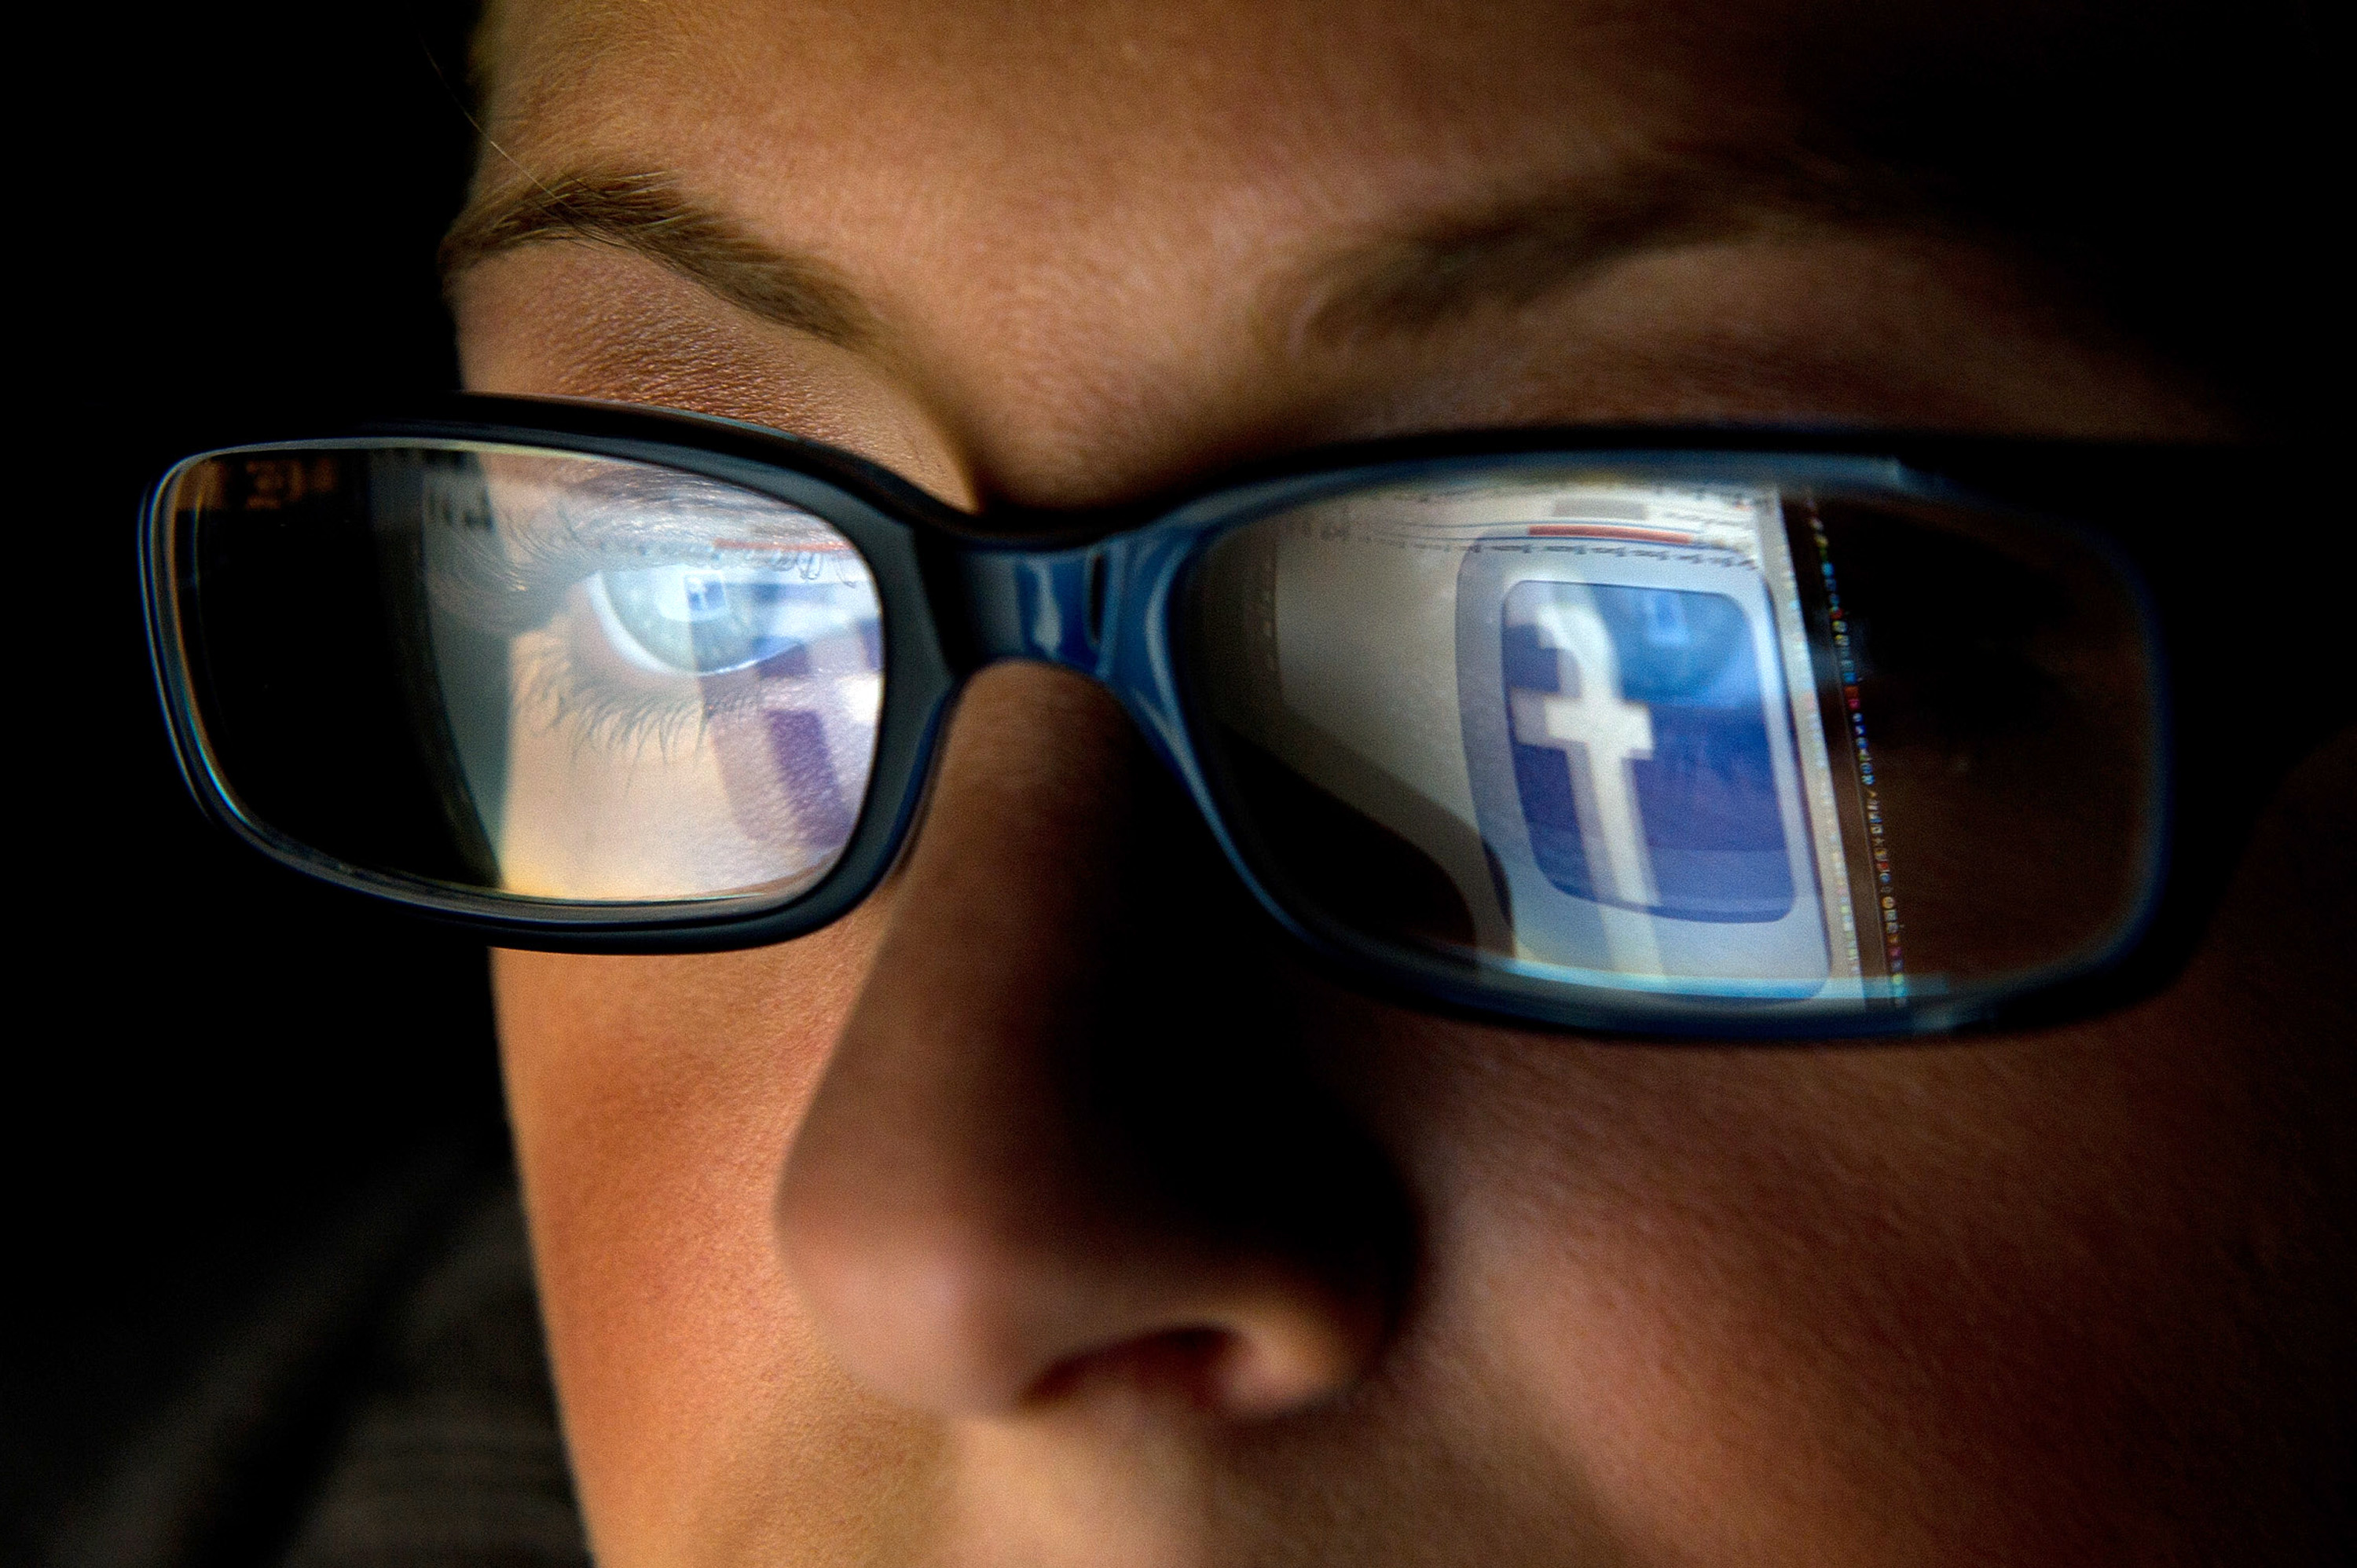 The Facebook logo is reflected in the eyeglasses of a user in San Francisco on Dec. 7, 2011.